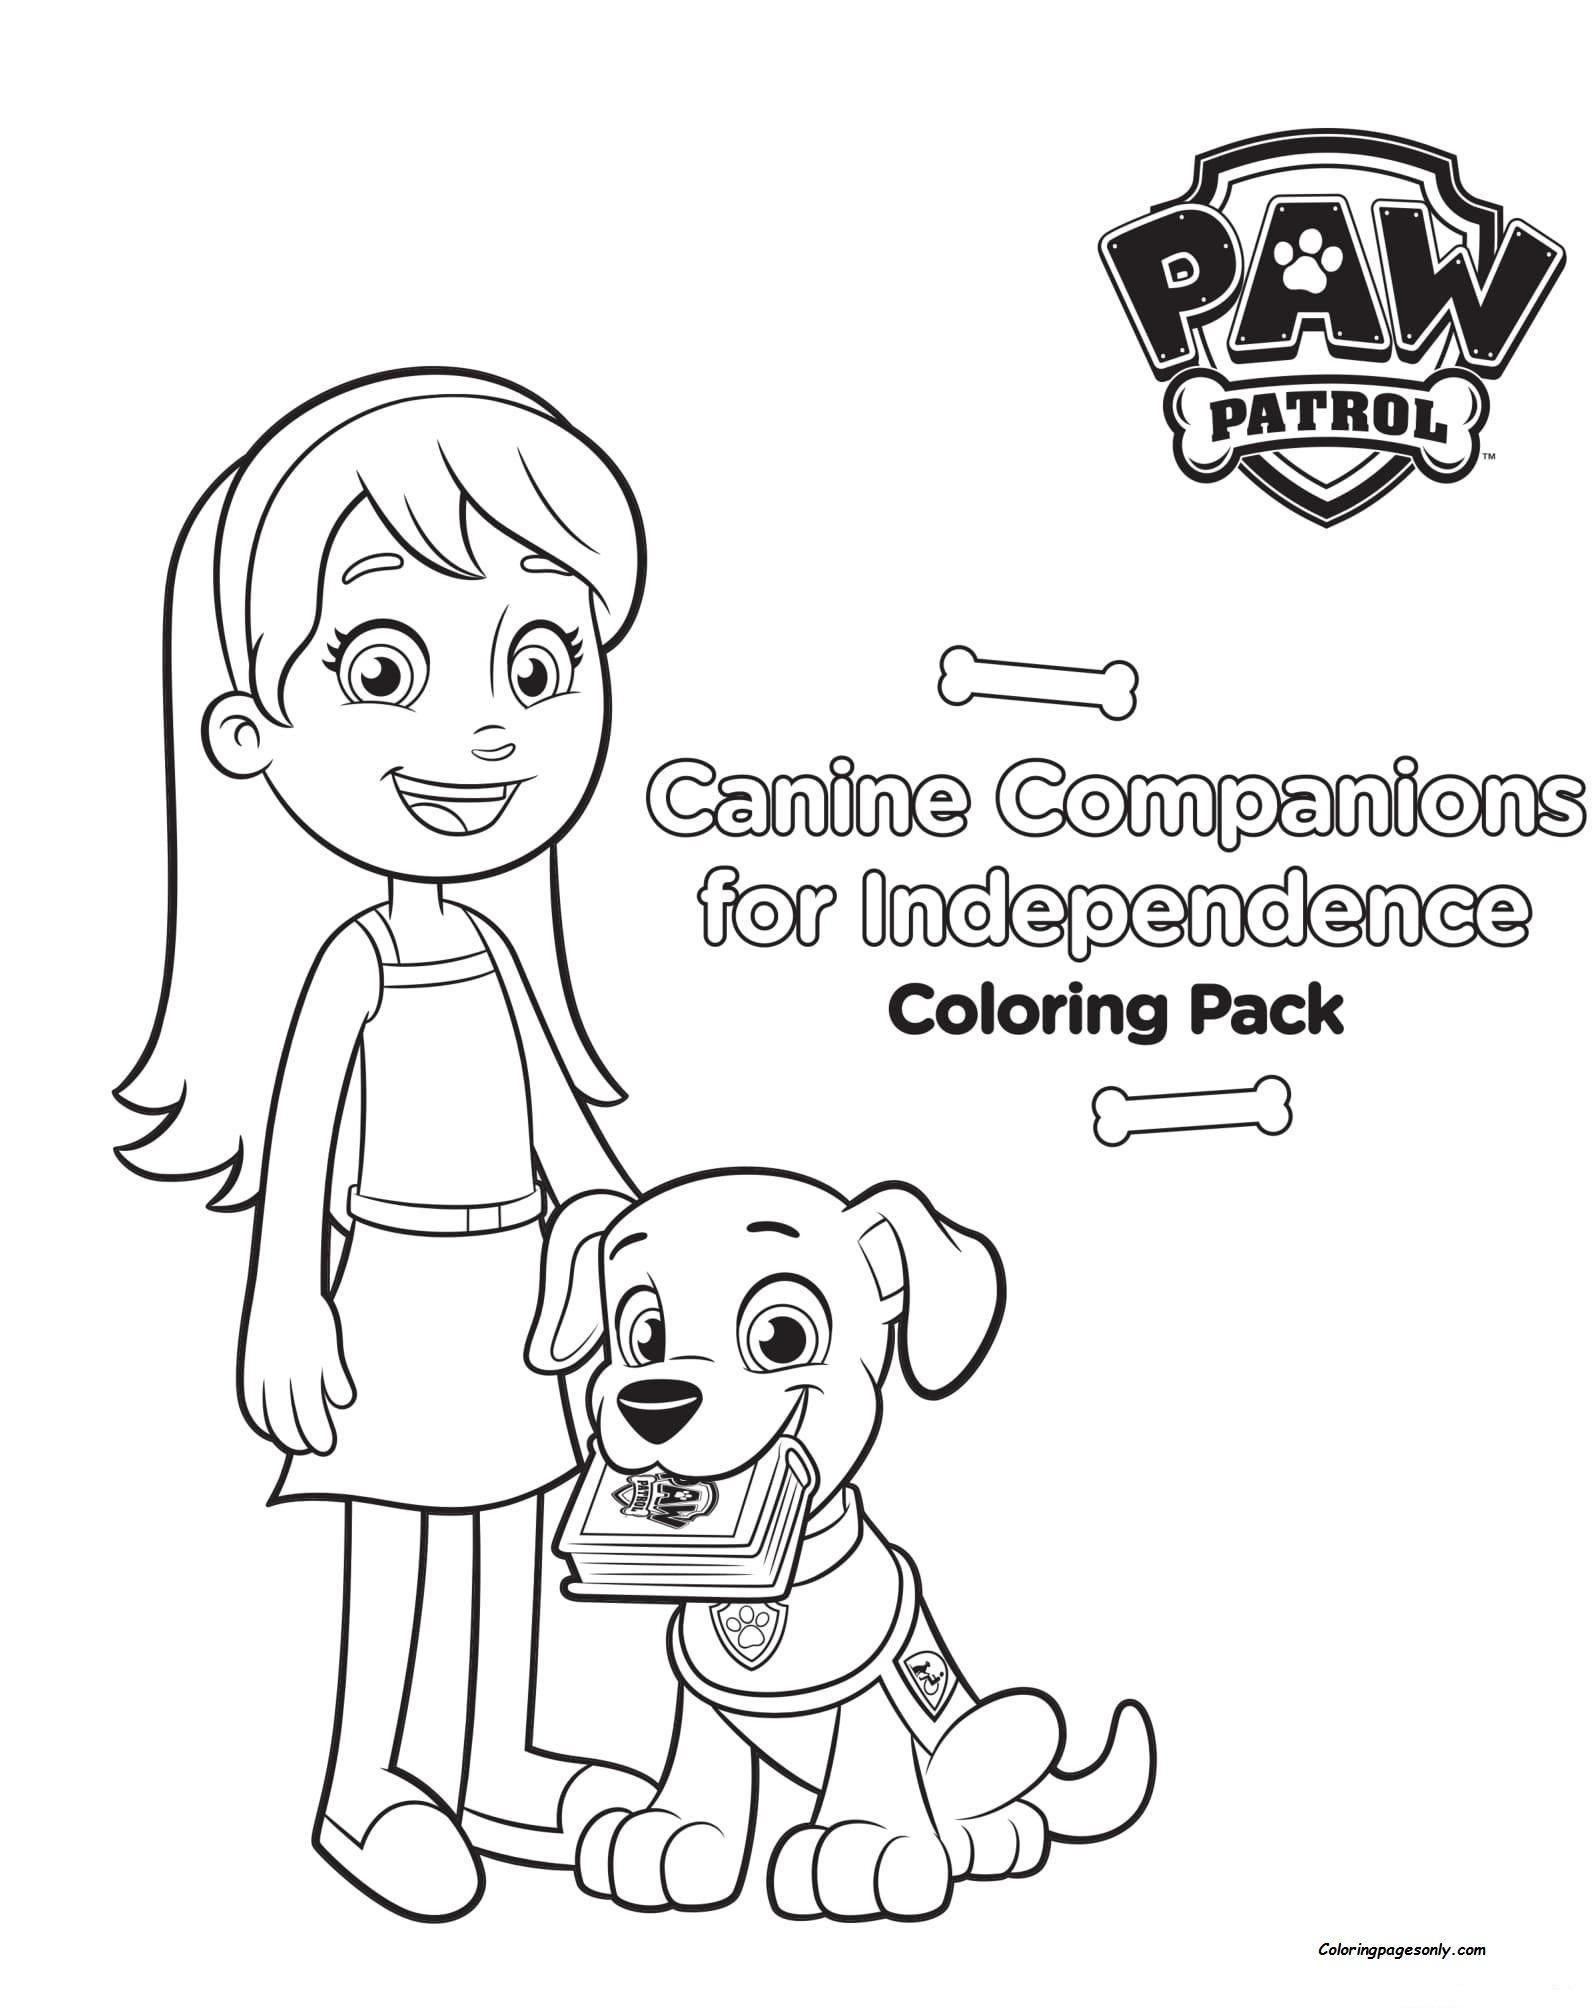 Canine Panions For Independence Coloring Pages Coloring